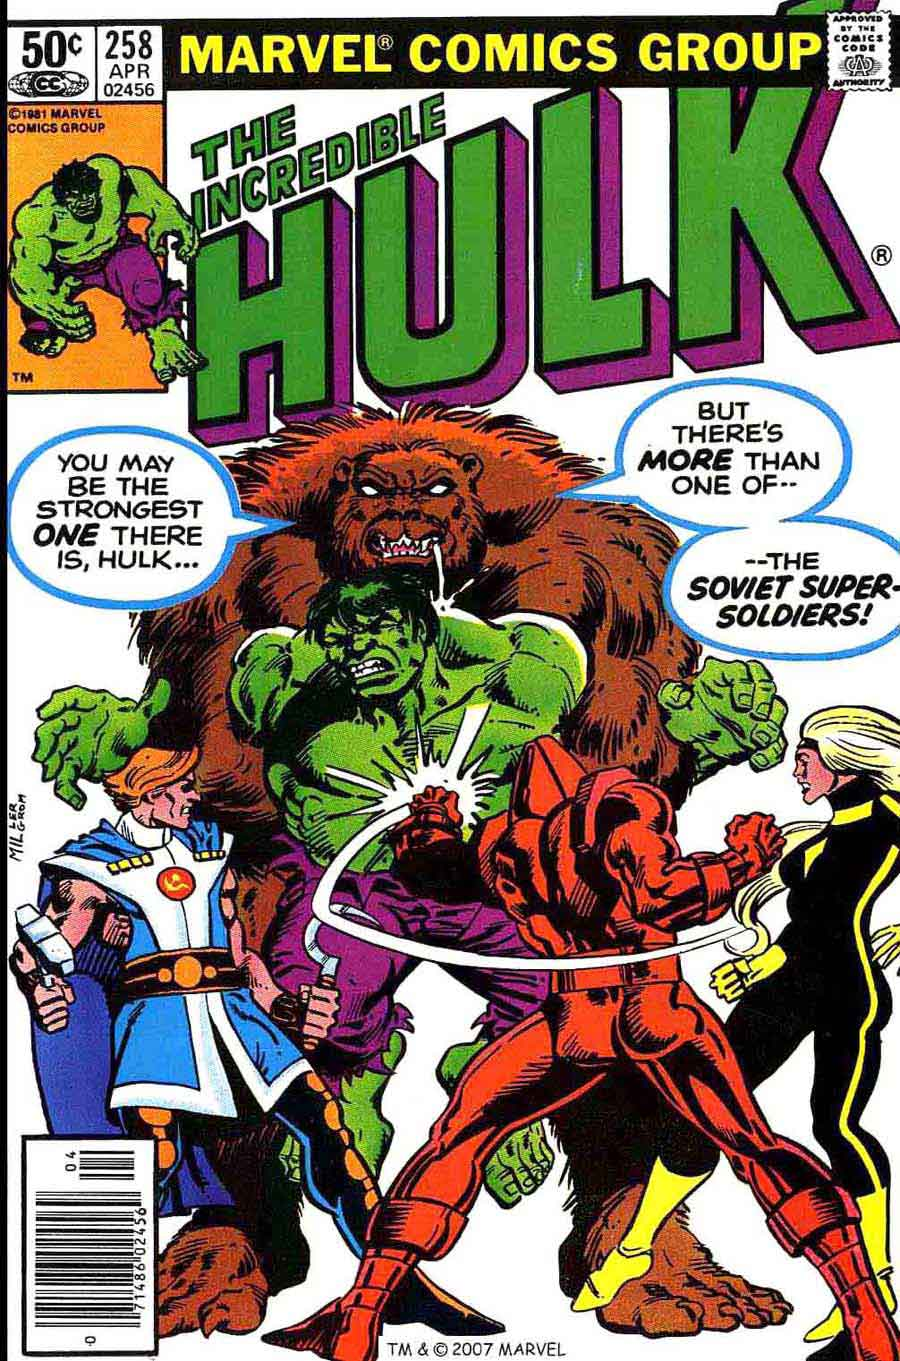 Incredible Hulk v2 #258 marvel comic book cover art by Frank Miller